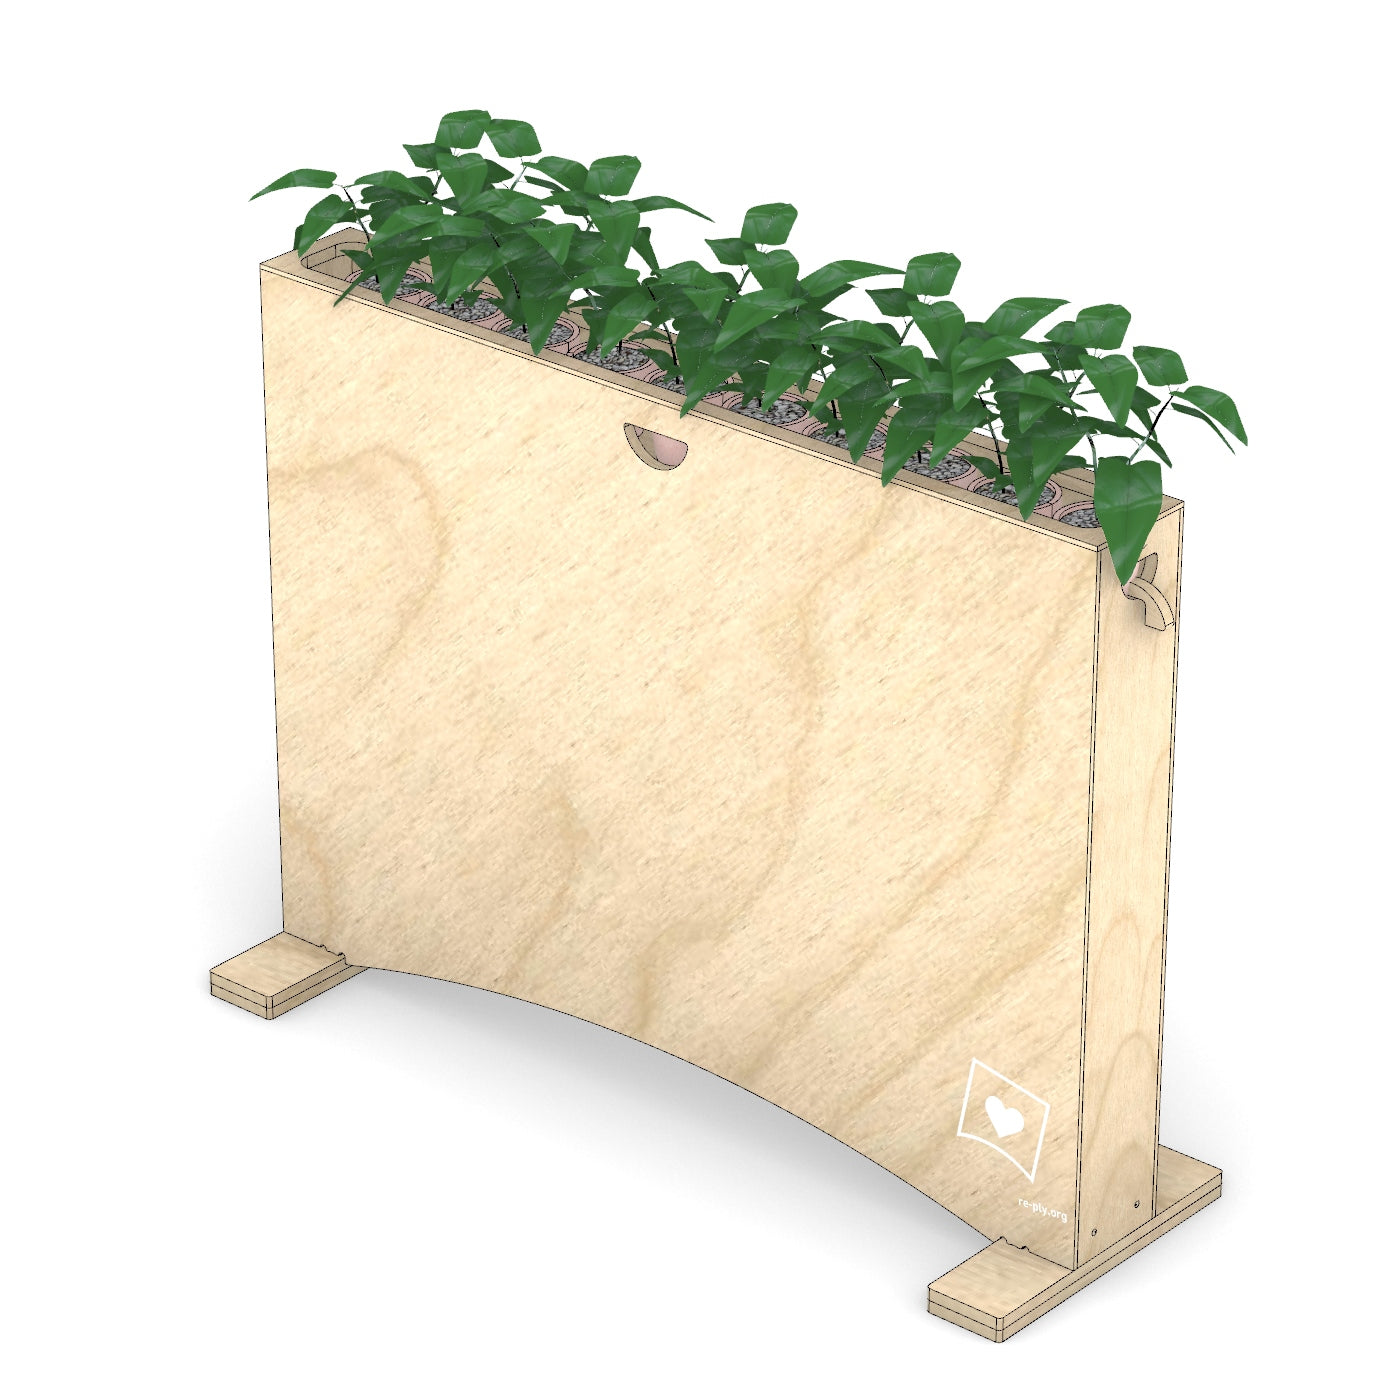 Planter / divider - from $198 - In Stock